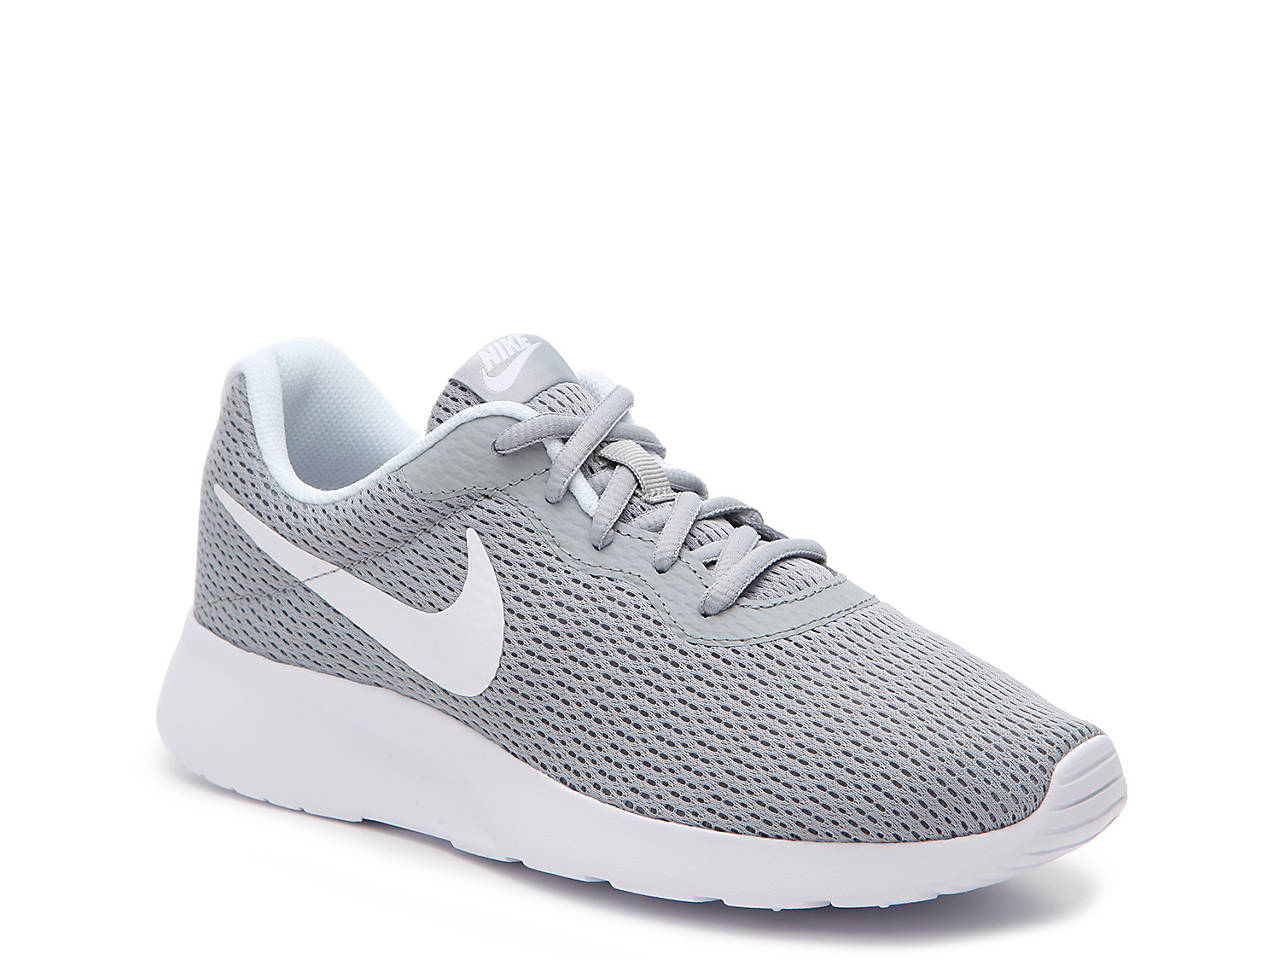 6b2cd8de93fd Nike Tanjun Sneaker - Women s Women s Shoes